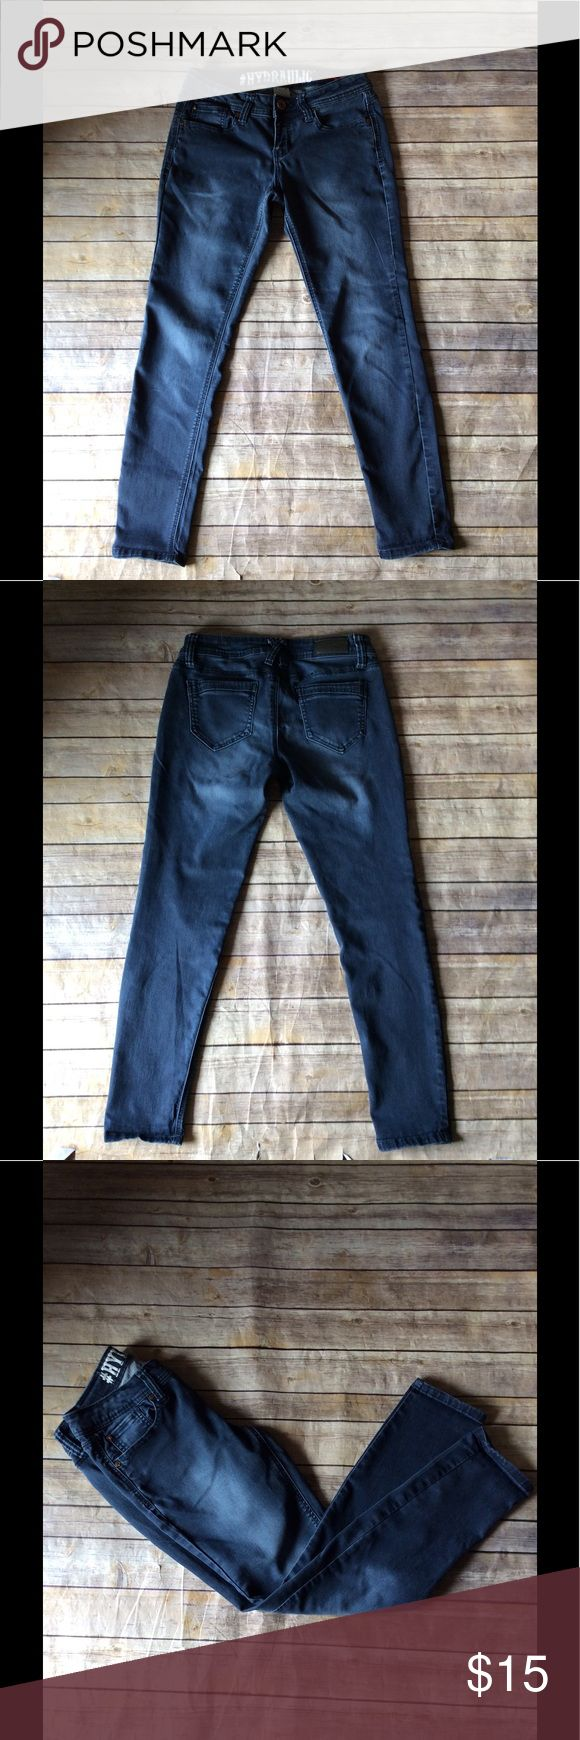 Hydraulic Super Skinny Lola Curvy Jeans Size 9/10 Hydraulic Super Skinny Lola Curvy Jeans Size 9/10. Good Preowned Condition. Ships from smoke free and pet free home. Hydraulic Jeans Skinny